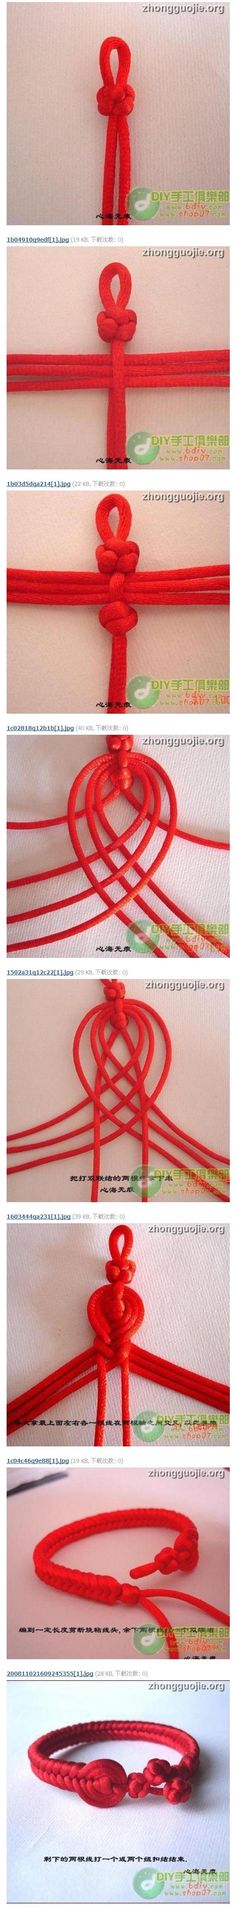 Benming evil red bracelet. The pyrene in Patong Results Strap tutorials.